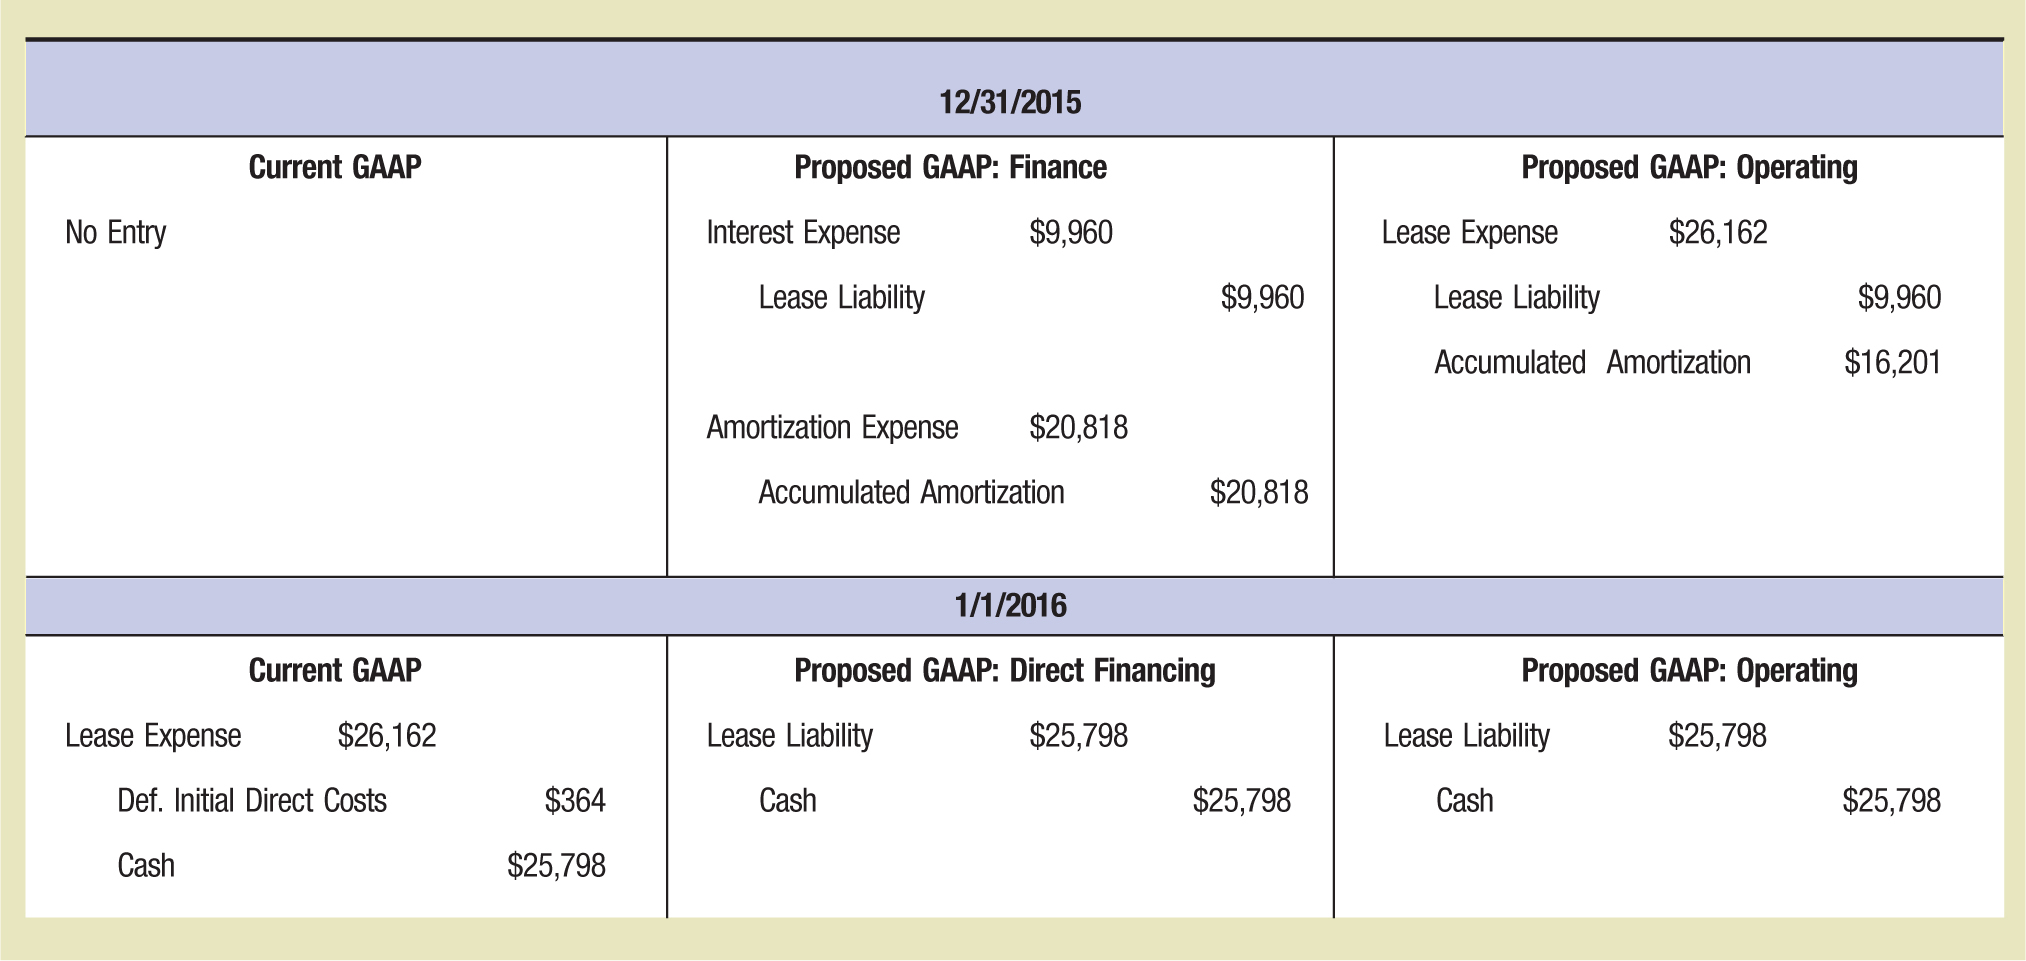 12/31/2015 Current GAAP Proposed GAAP: Finance Proposed GAAP: Operating No Entry Interest Expense $9,960 Lease Expense $26,162 Lease Liability $9,960 Lease Liability $9,960 Accumulated Amortization $16,201 Amortization Expense $20,818 Accumulated Amortization $20,818 1/1/2016 Current GAAP Proposed GAAP: Direct Financing Proposed GAAP: Operating Lease Expense $26,162 Lease Liability $25,798 Lease Liability $25,798 Def. Initial Direct Costs $364 Cash $25,798 Cash $25,798 Cash $25,798